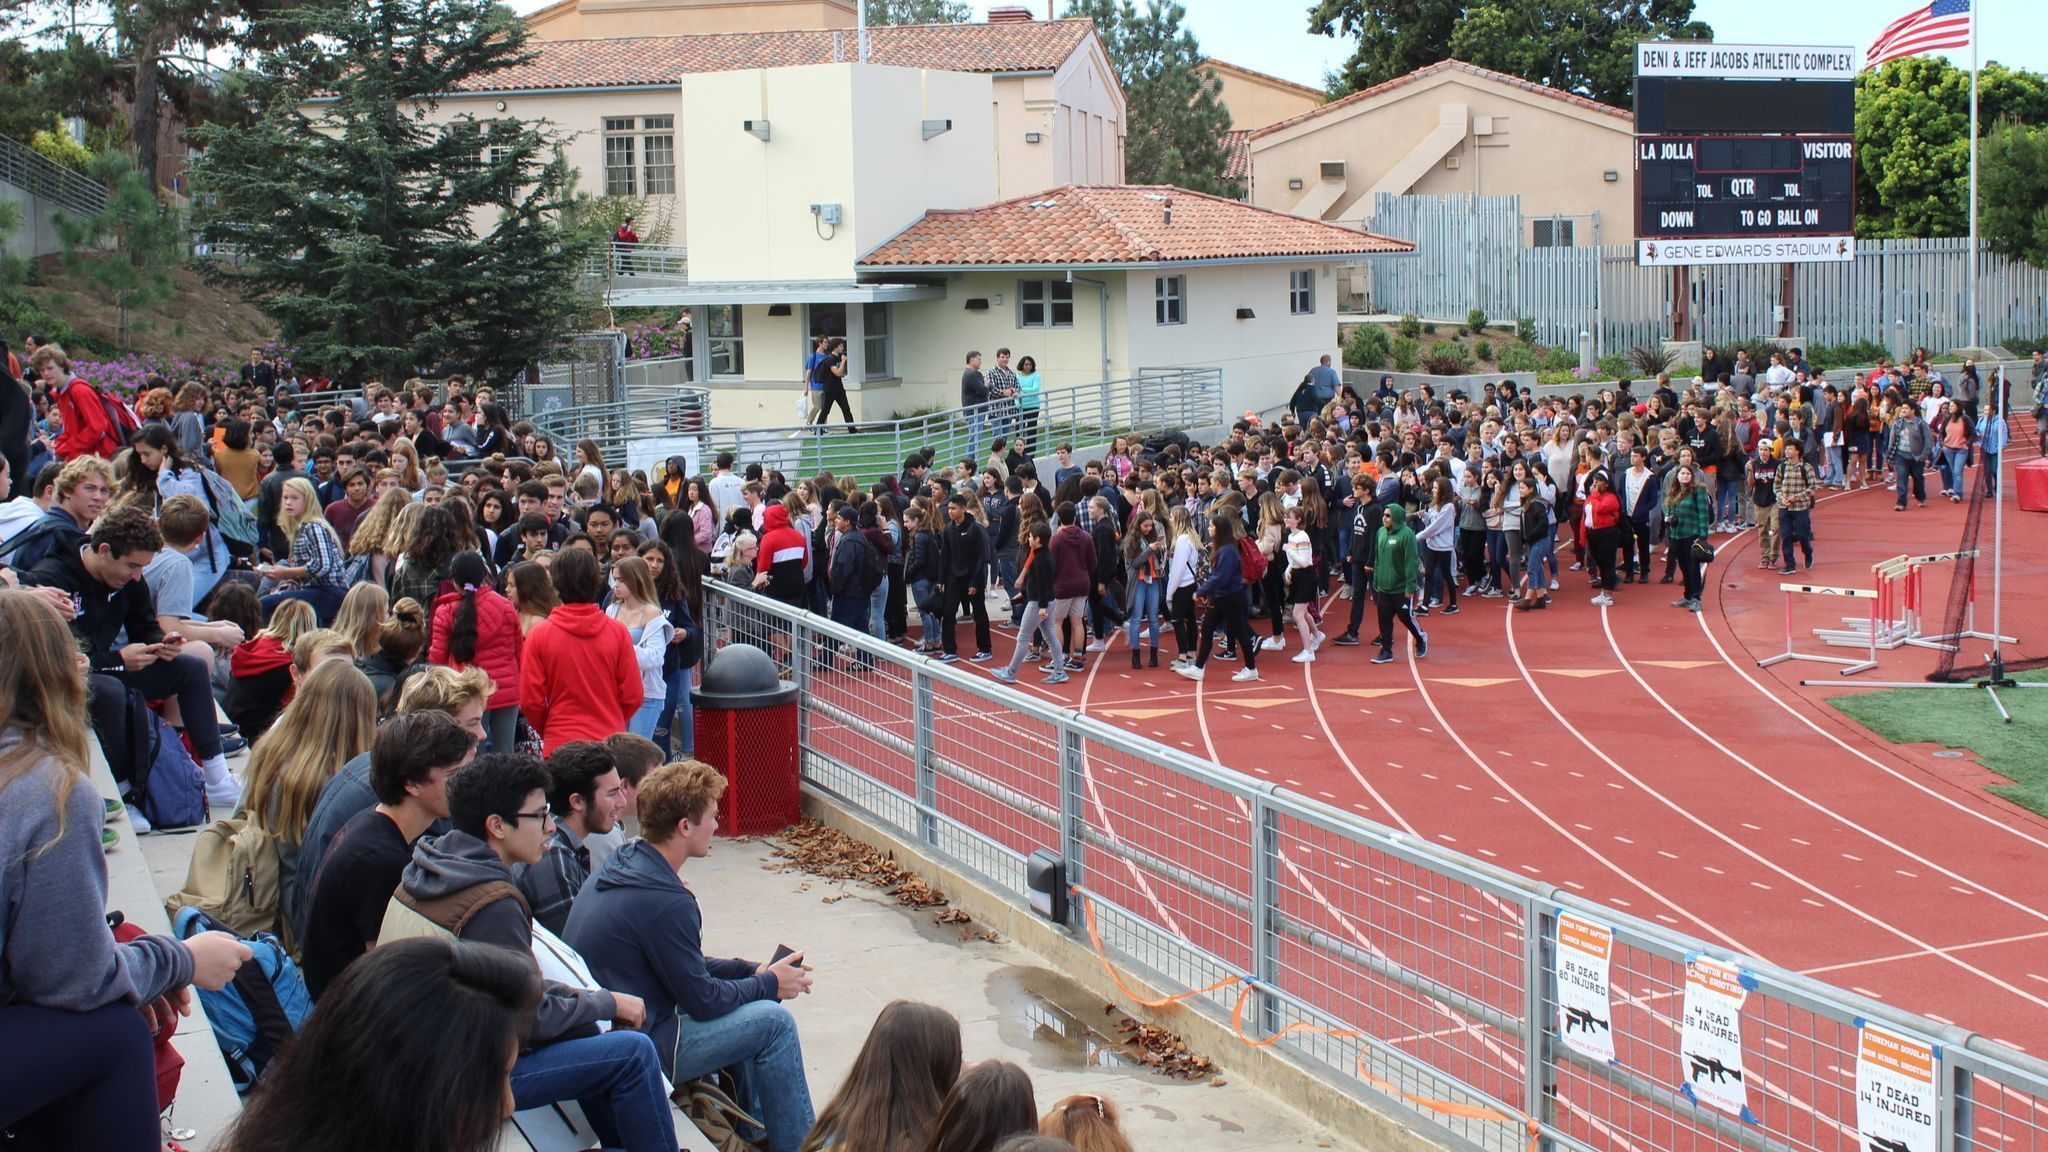 Students file into the stands at 9:57 a.m.